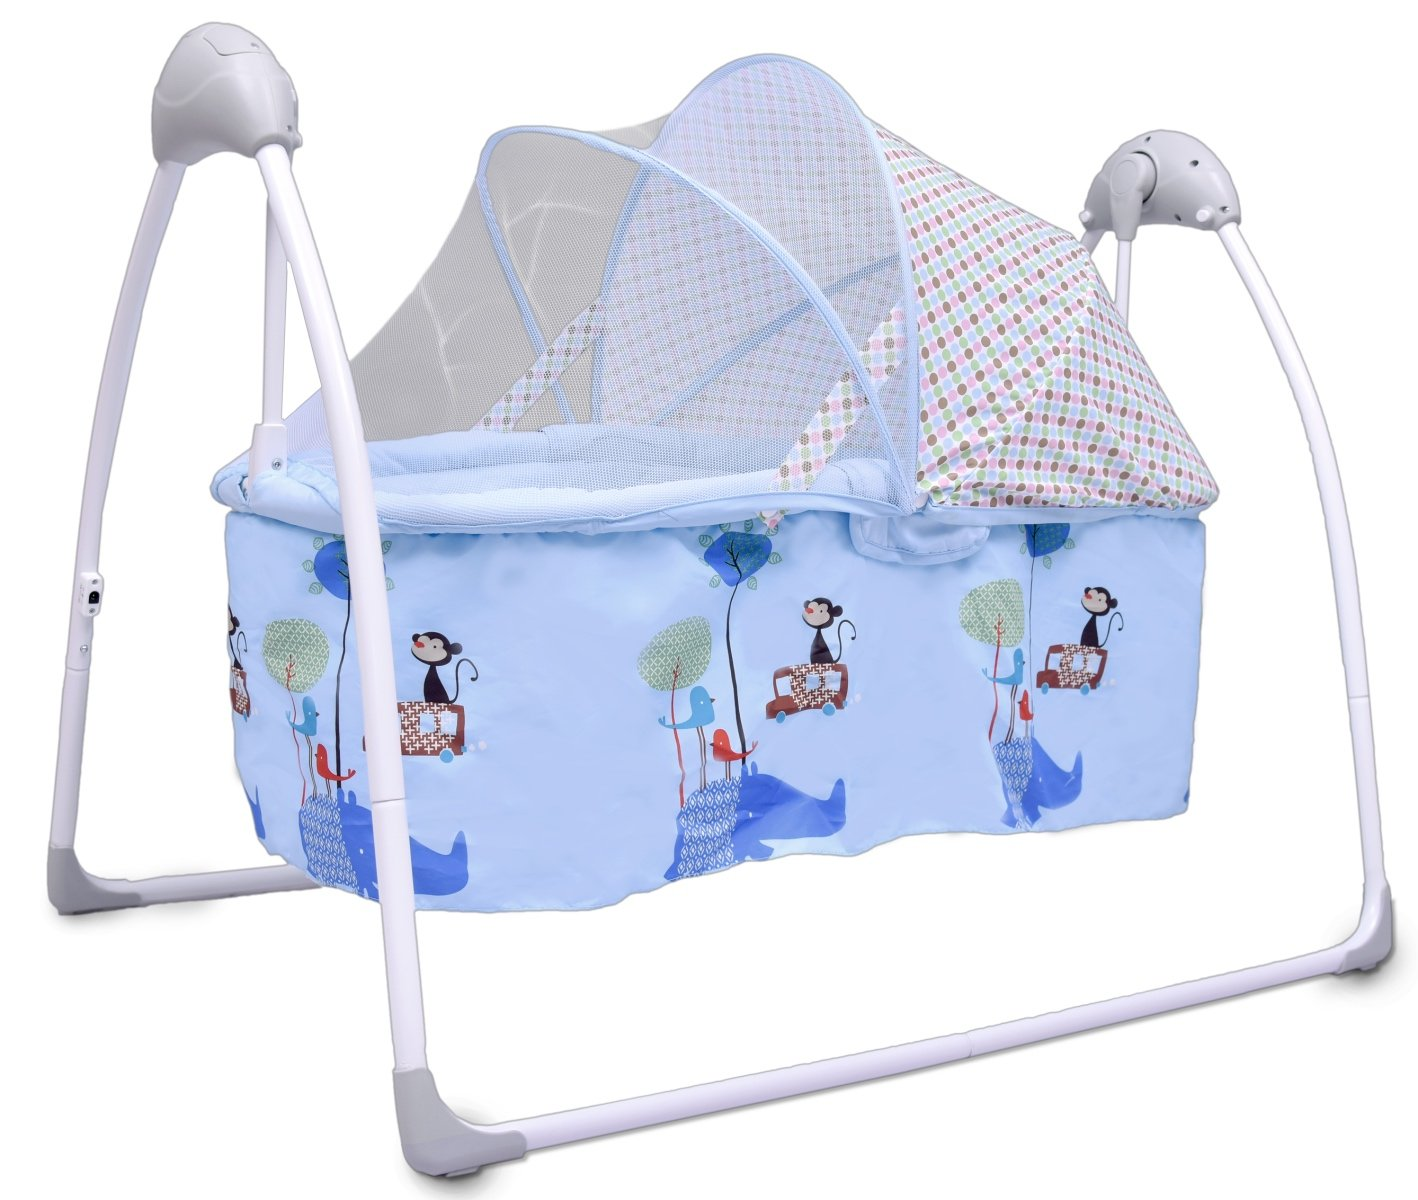 R for Rabbit Lullabies Cradle for Baby - New Born Baby Swing